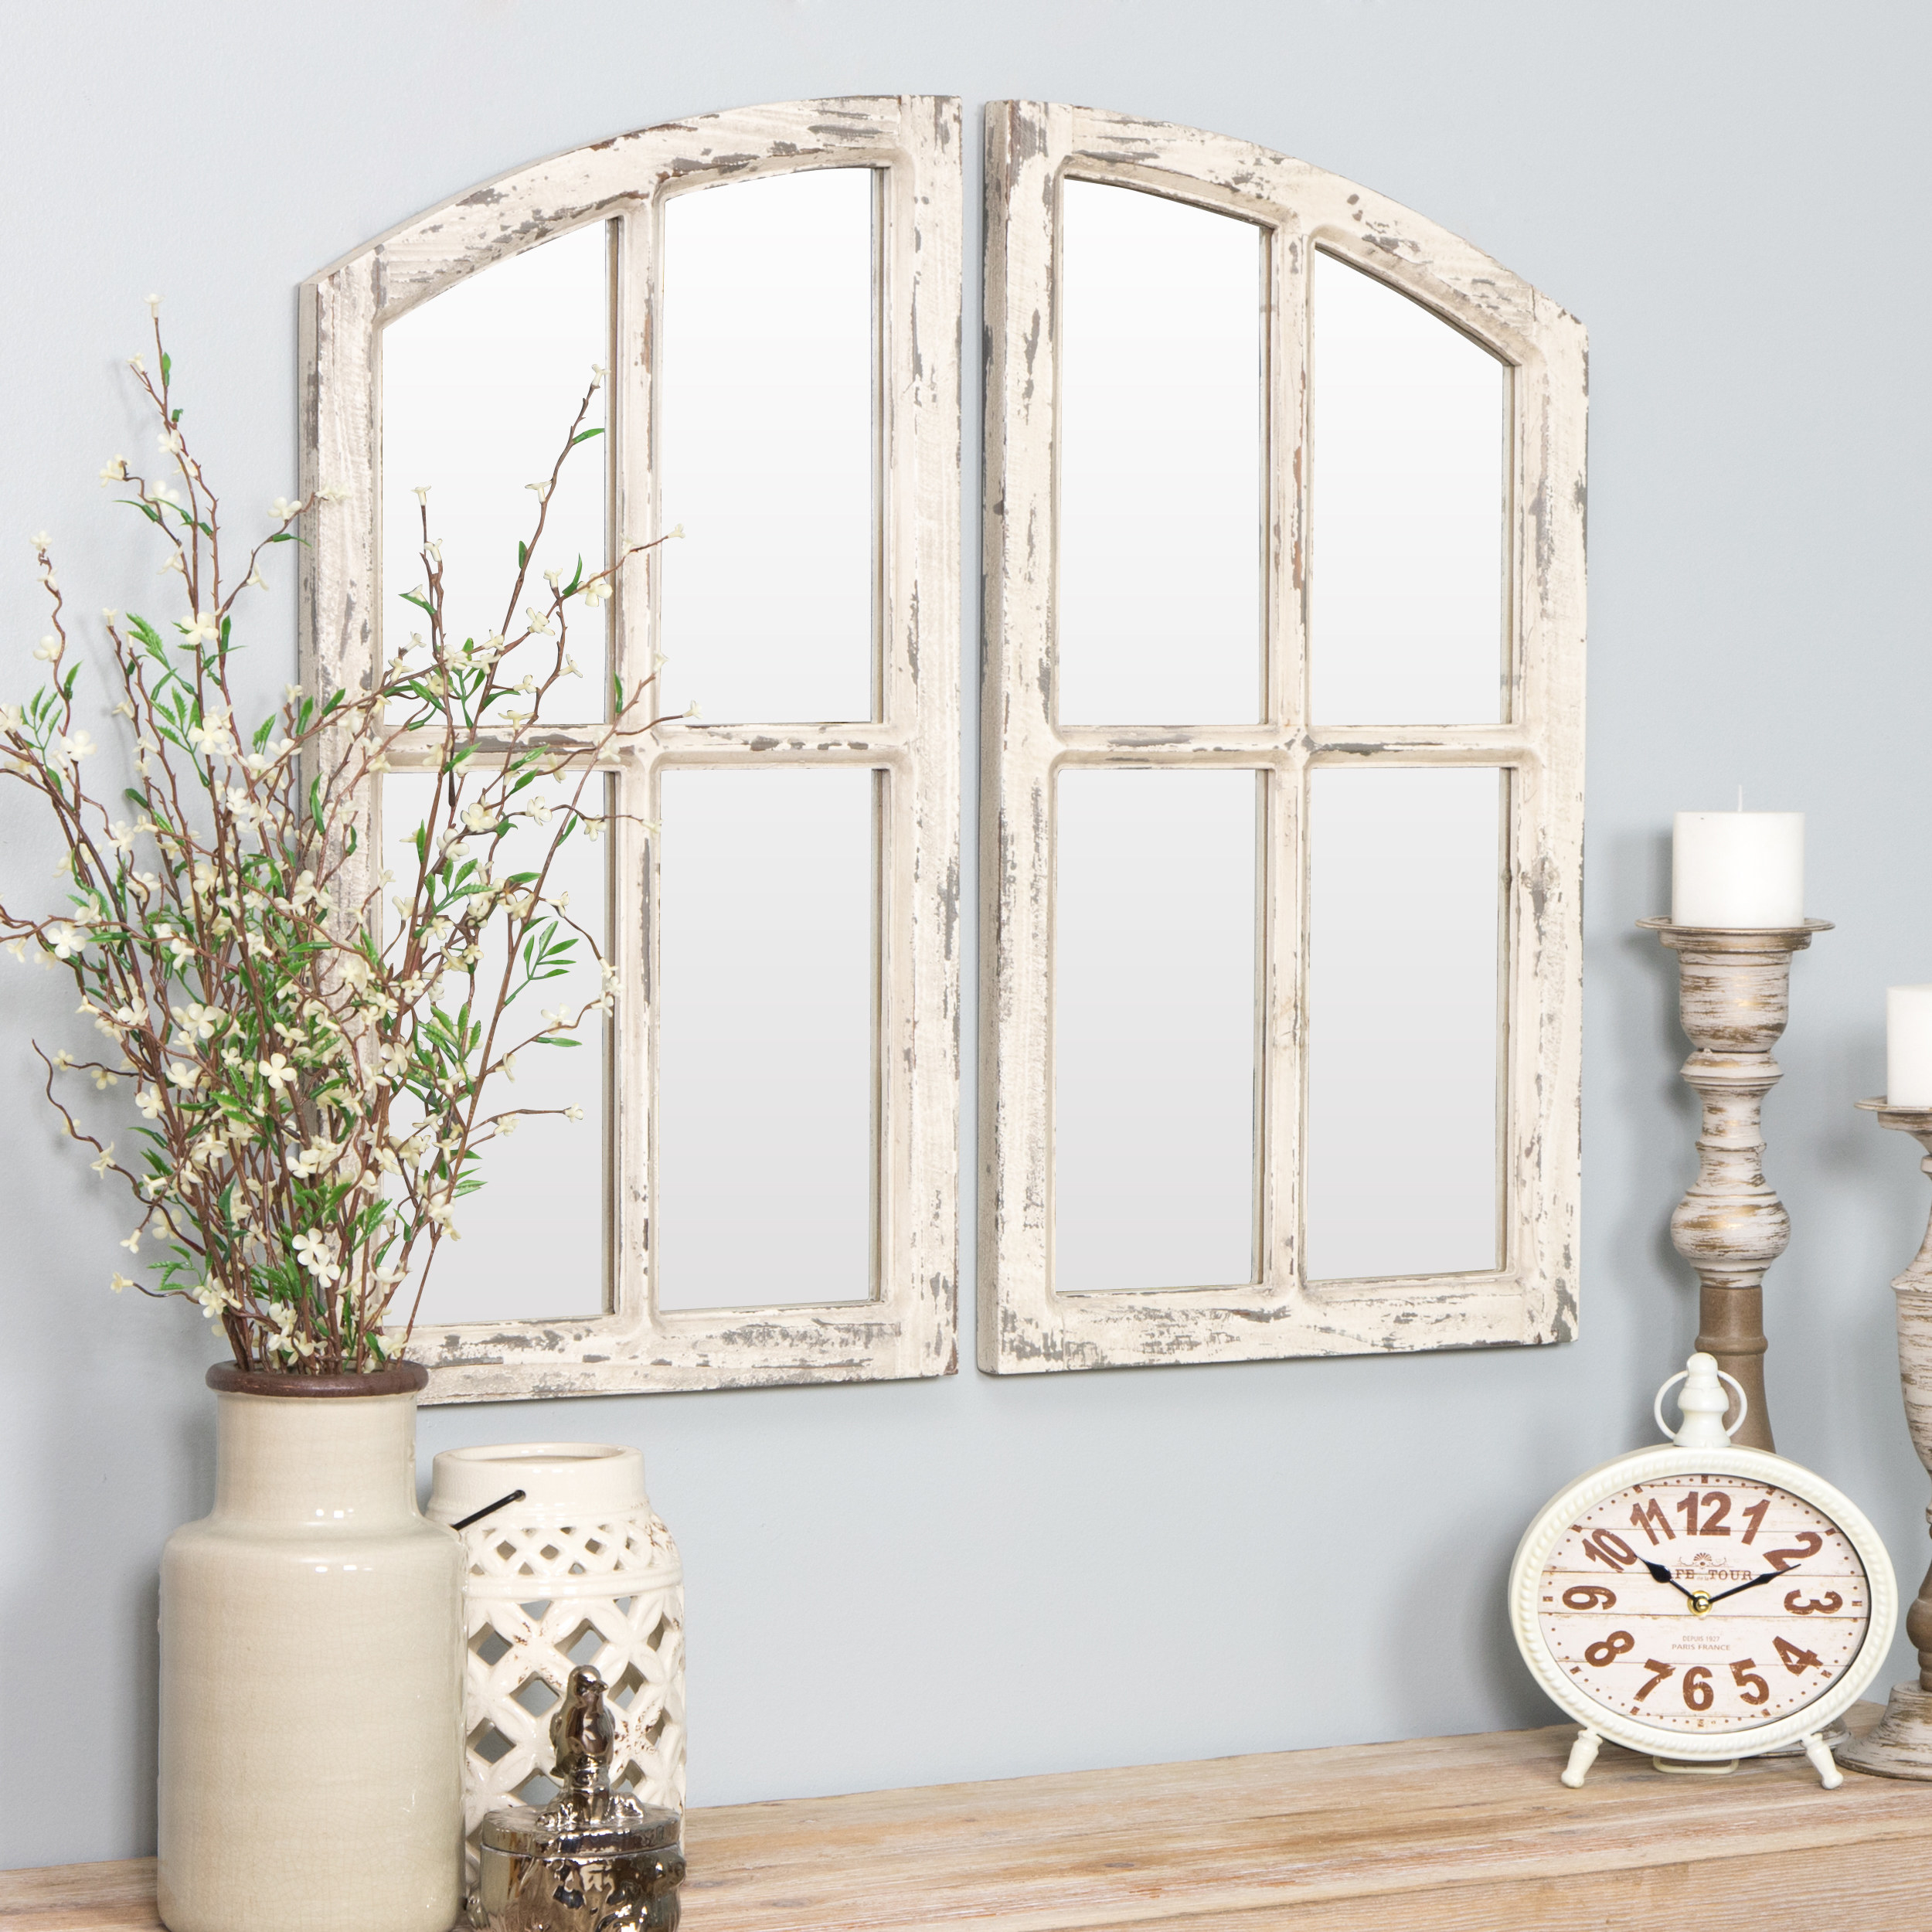 The white rustic window pane mirrors on the wall